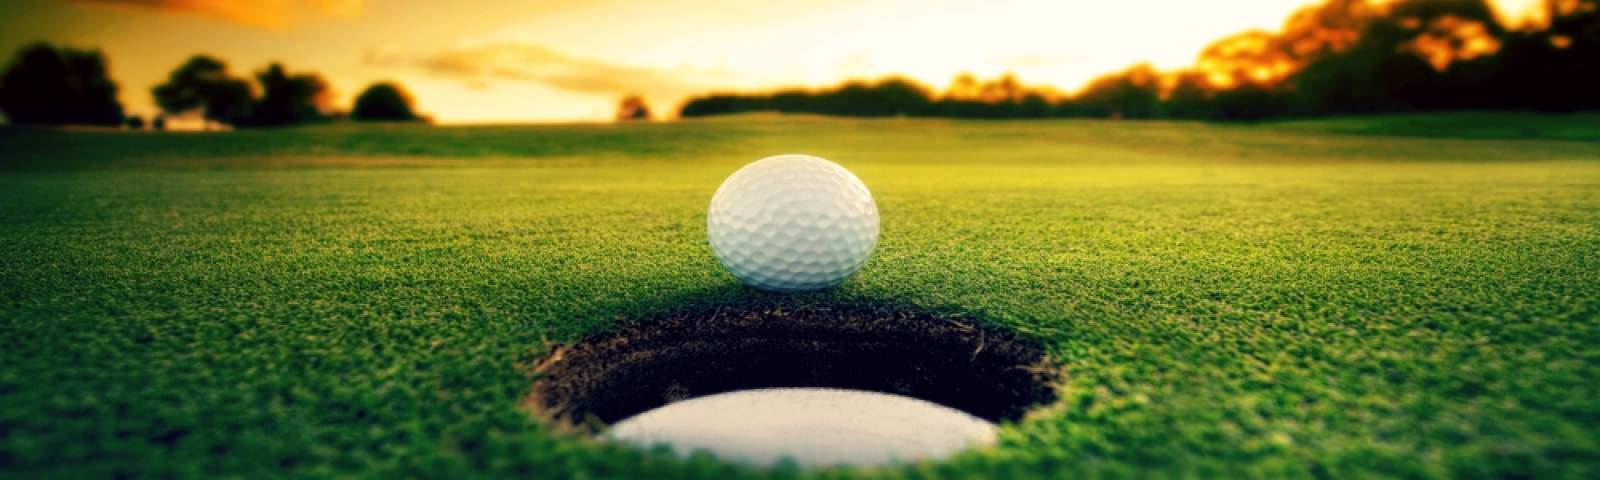 "<h1><span style=""color: #ffffff;"">BOOK NOW!</span></h1>